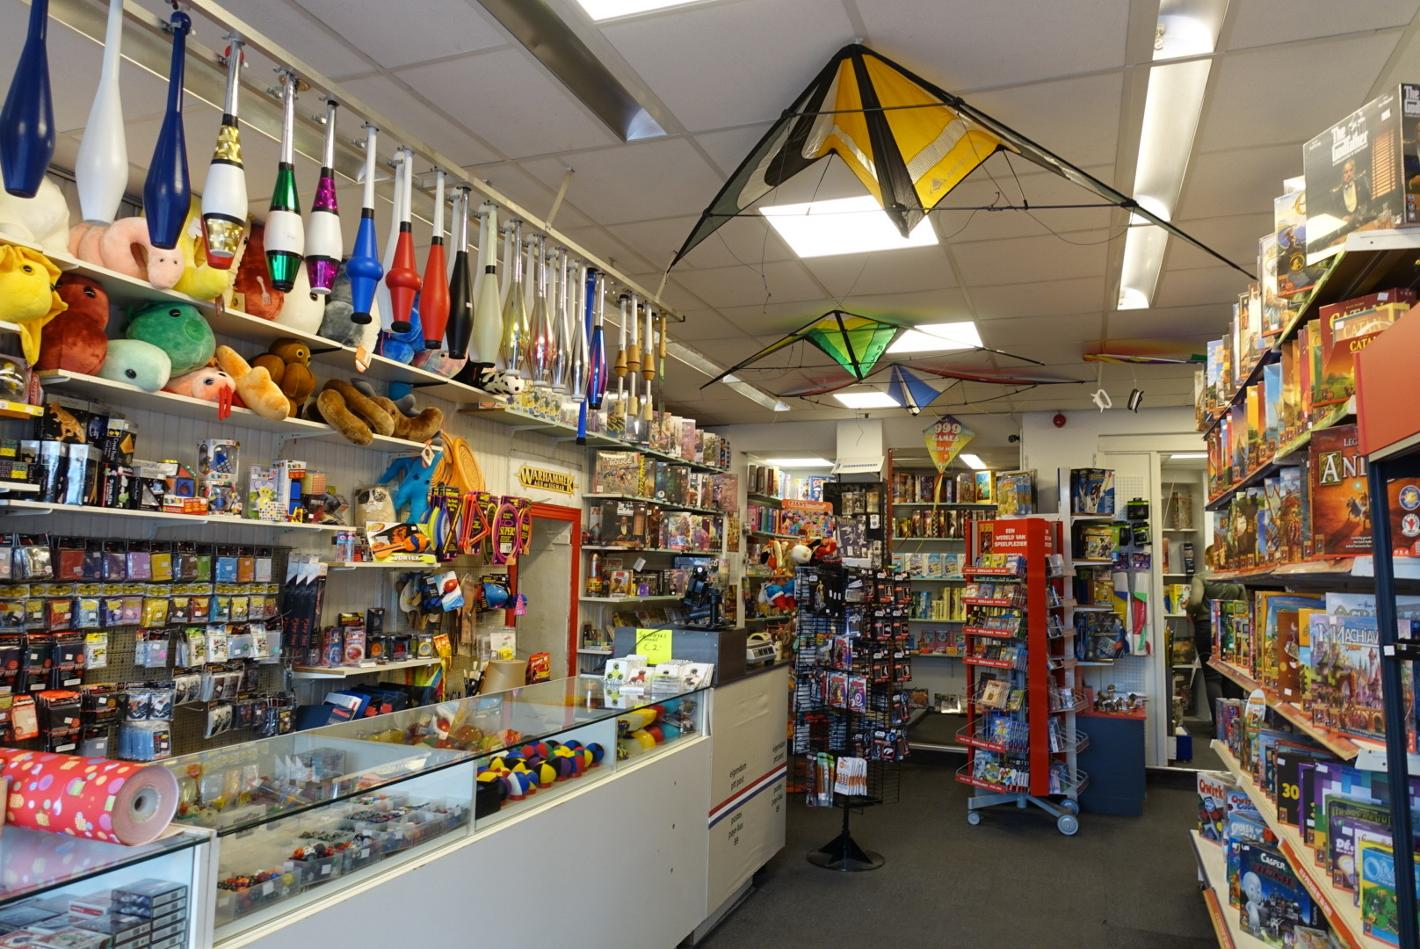 Photo De Vliegershop in Leiden, Shopping, Buy gifts, Buy hobby stuff - #1